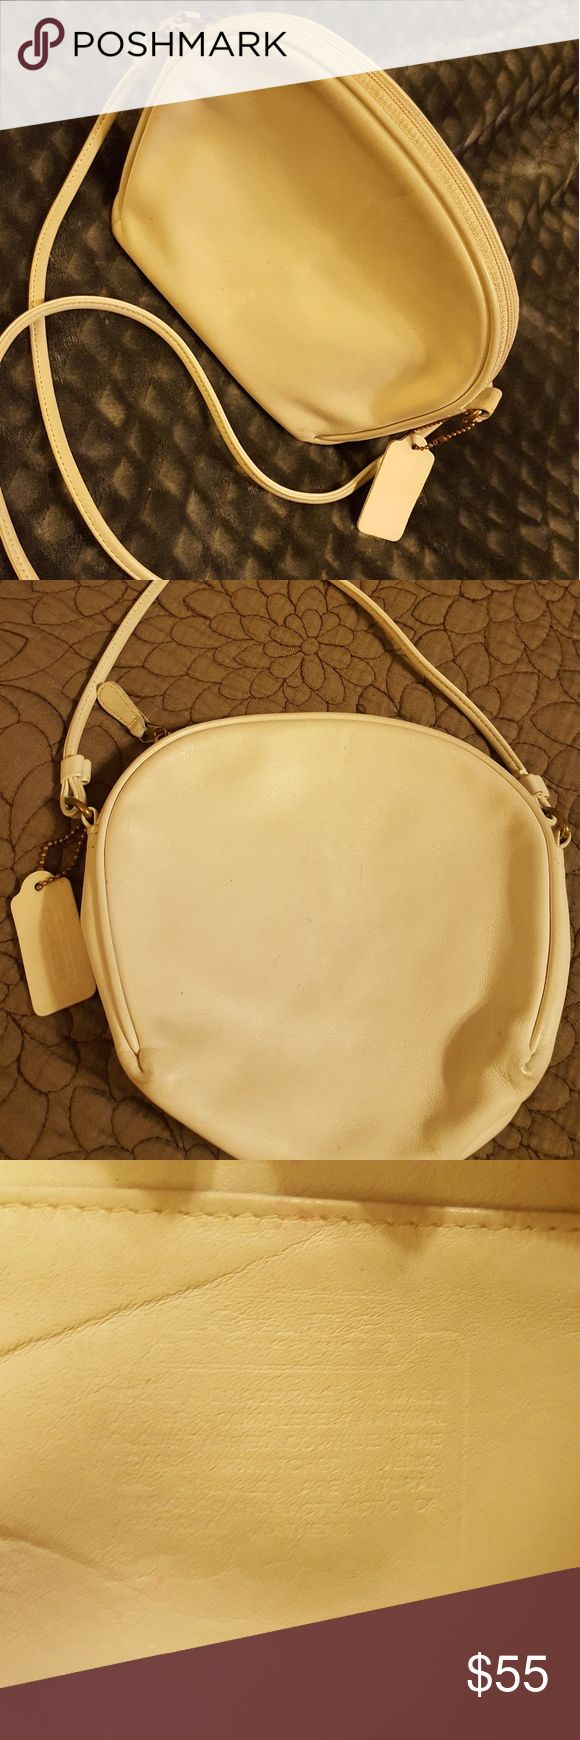 Vintage, authentic Coach purse. Adorable, round, white leather purse. One owner, smoke free home. Inside has a couple little spots, and Coach tag is slightly split but otherwise great condition! COACH Bags Shoulder Bags